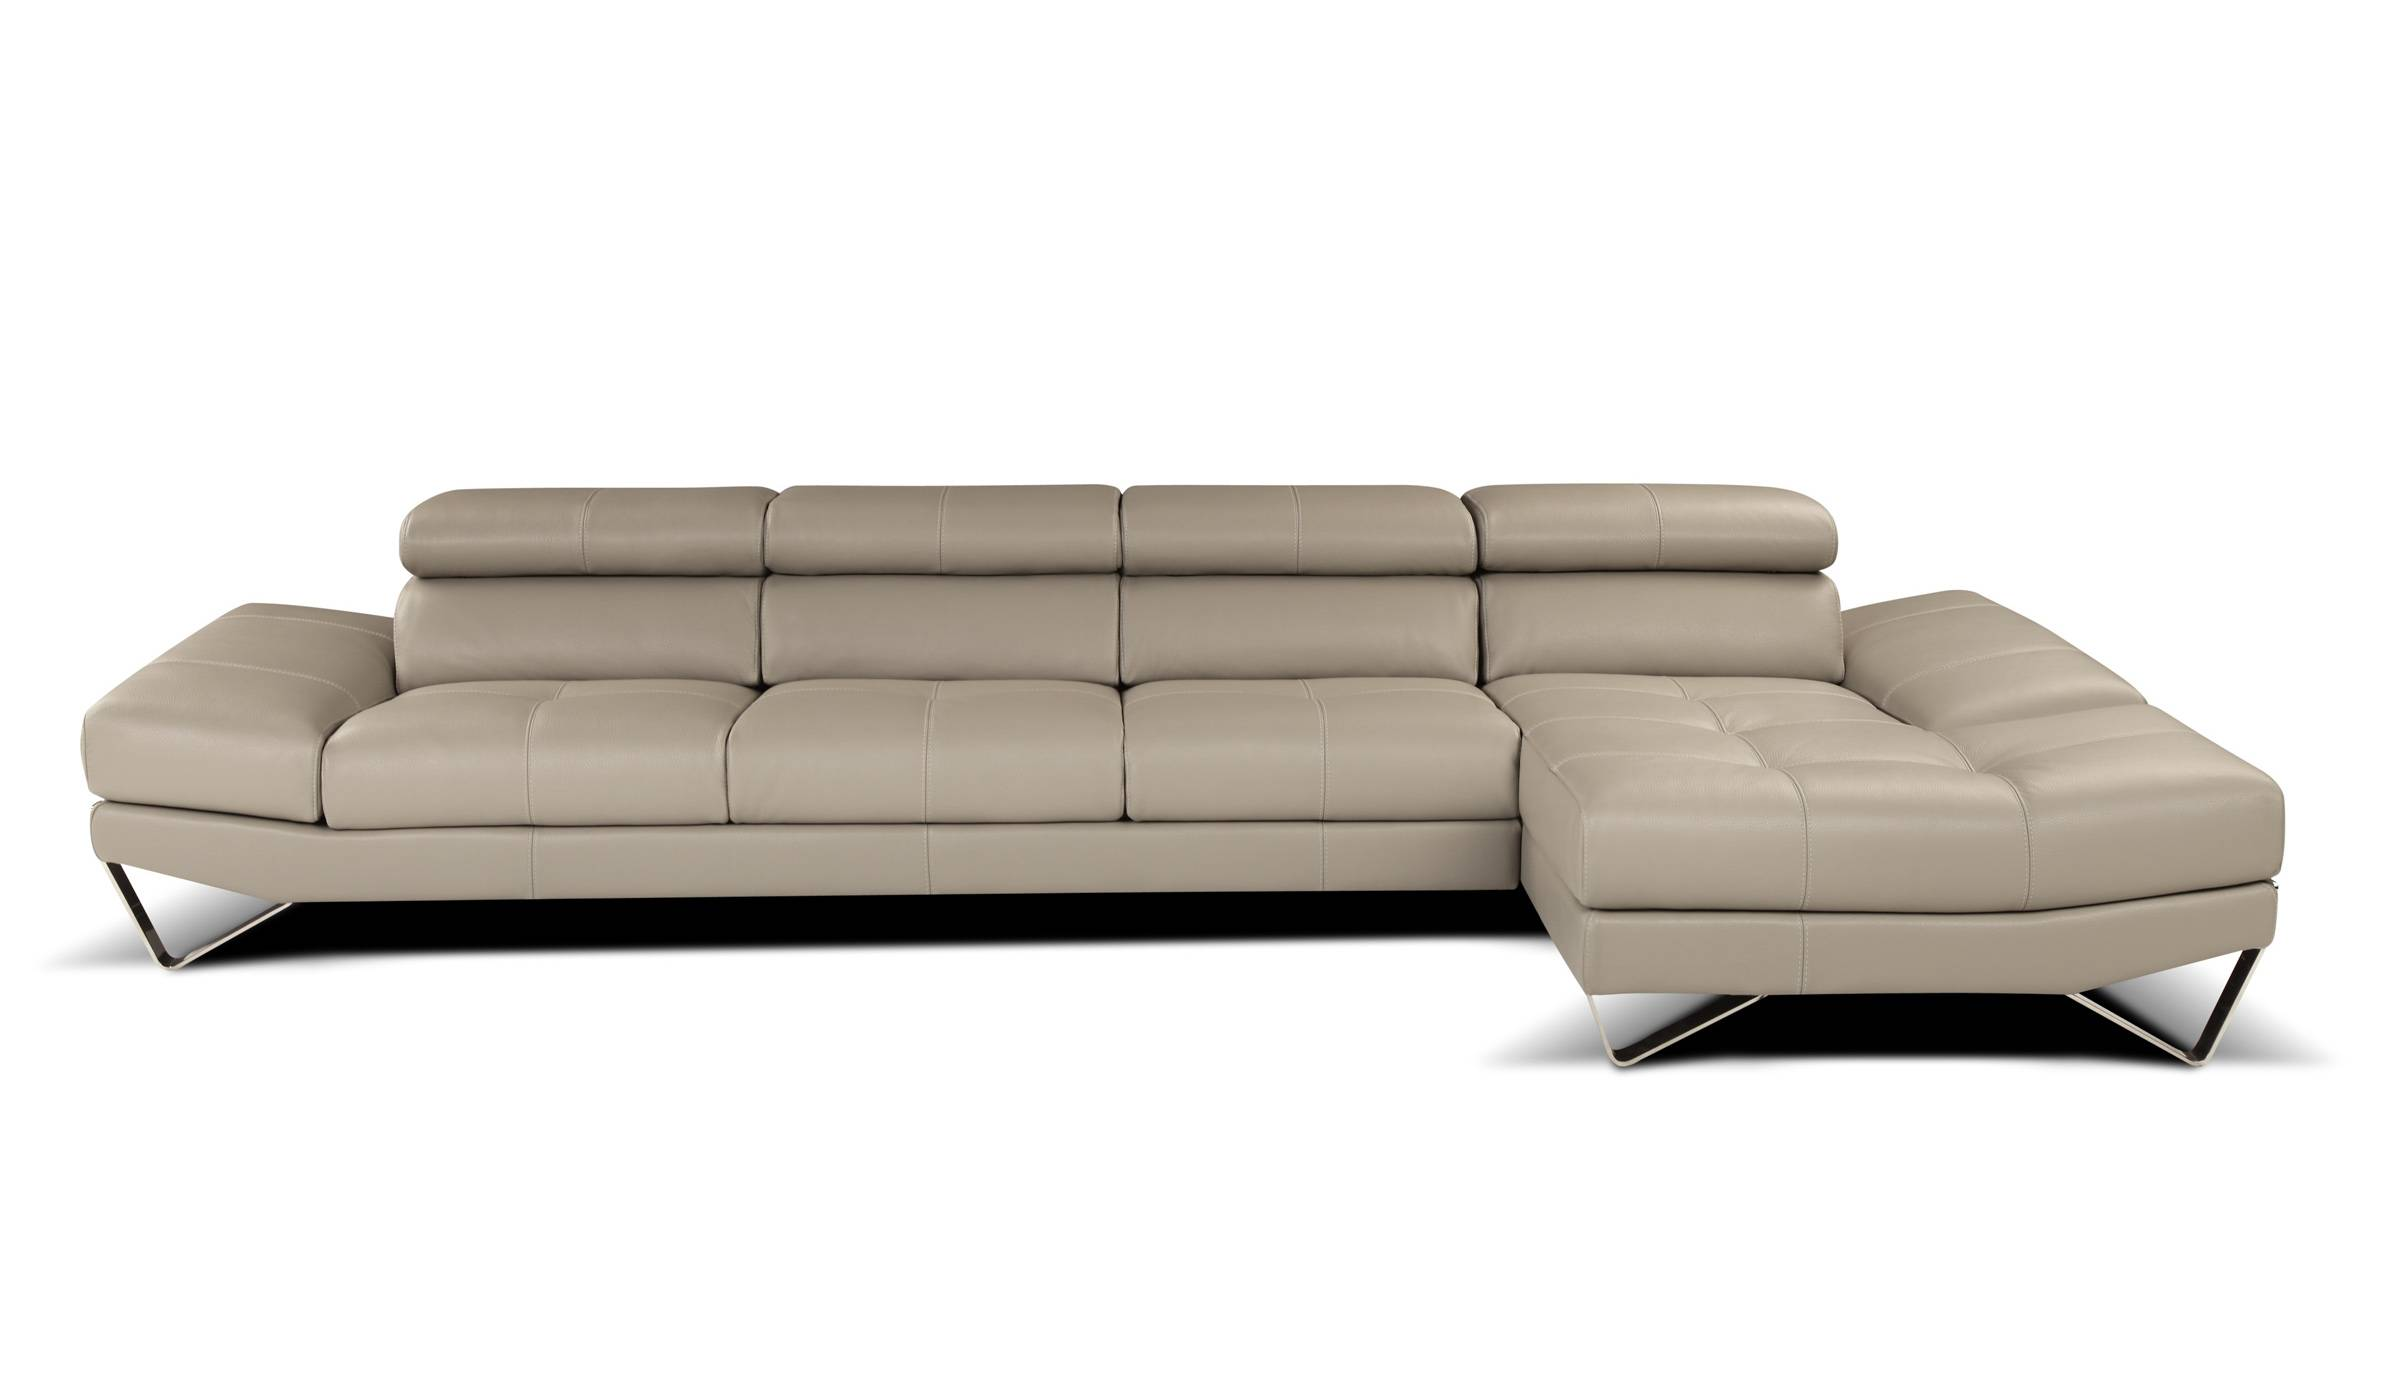 Sophisticated All Italian Leather Sectional Sofa Spokane